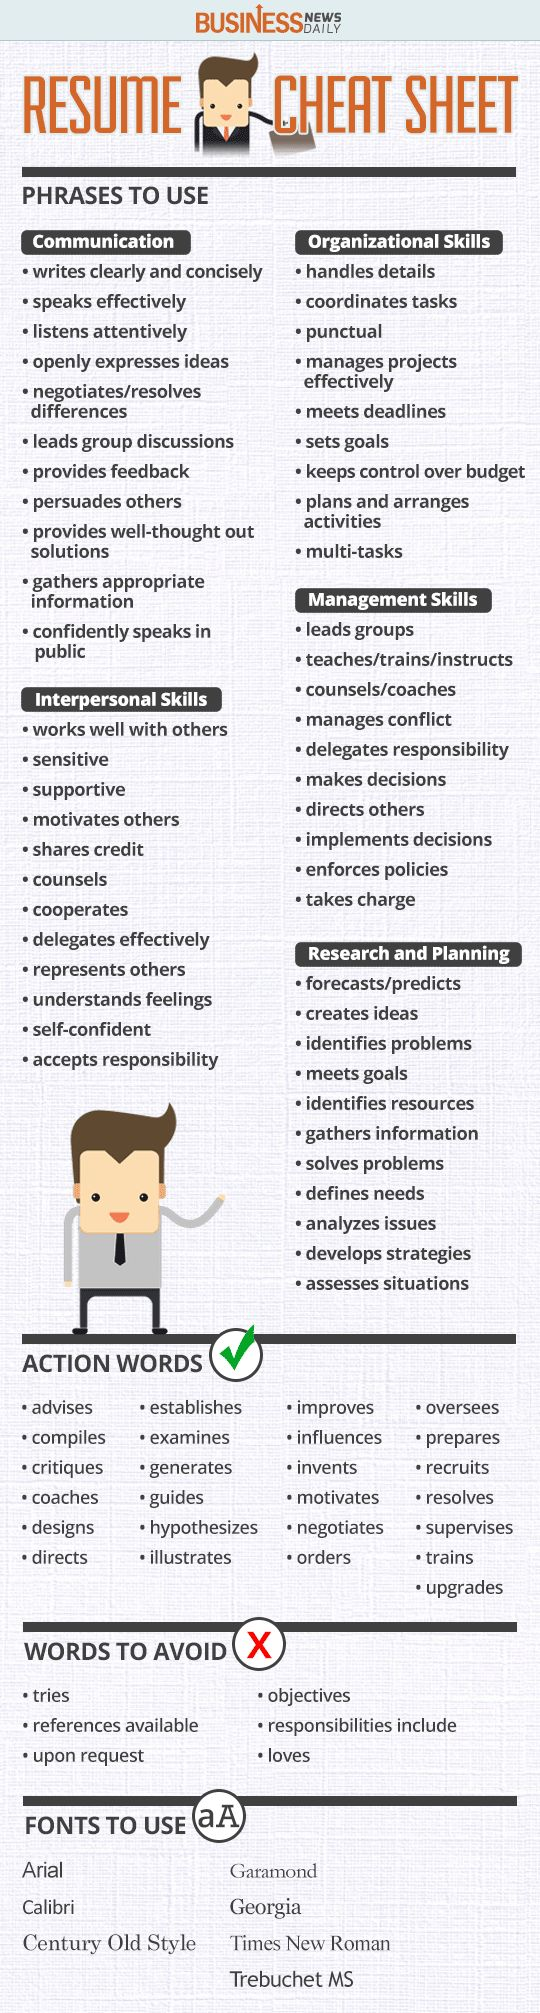 Opposenewapstandardsus  Unusual  Ideas About Resume On Pinterest  Cv Format Resume Cv And  With Entrancing Resume Cheat Sheet Infographic Andrews Almost Done With A Complete Unit On Employment Which With Lovely Resume Examples For Administrative Assistant Also Resume Coach In Addition Graduate School Application Resume And Marketing Skills Resume As Well As Job Objective Resume Additionally Legal Resume Format From Pinterestcom With Opposenewapstandardsus  Entrancing  Ideas About Resume On Pinterest  Cv Format Resume Cv And  With Lovely Resume Cheat Sheet Infographic Andrews Almost Done With A Complete Unit On Employment Which And Unusual Resume Examples For Administrative Assistant Also Resume Coach In Addition Graduate School Application Resume From Pinterestcom